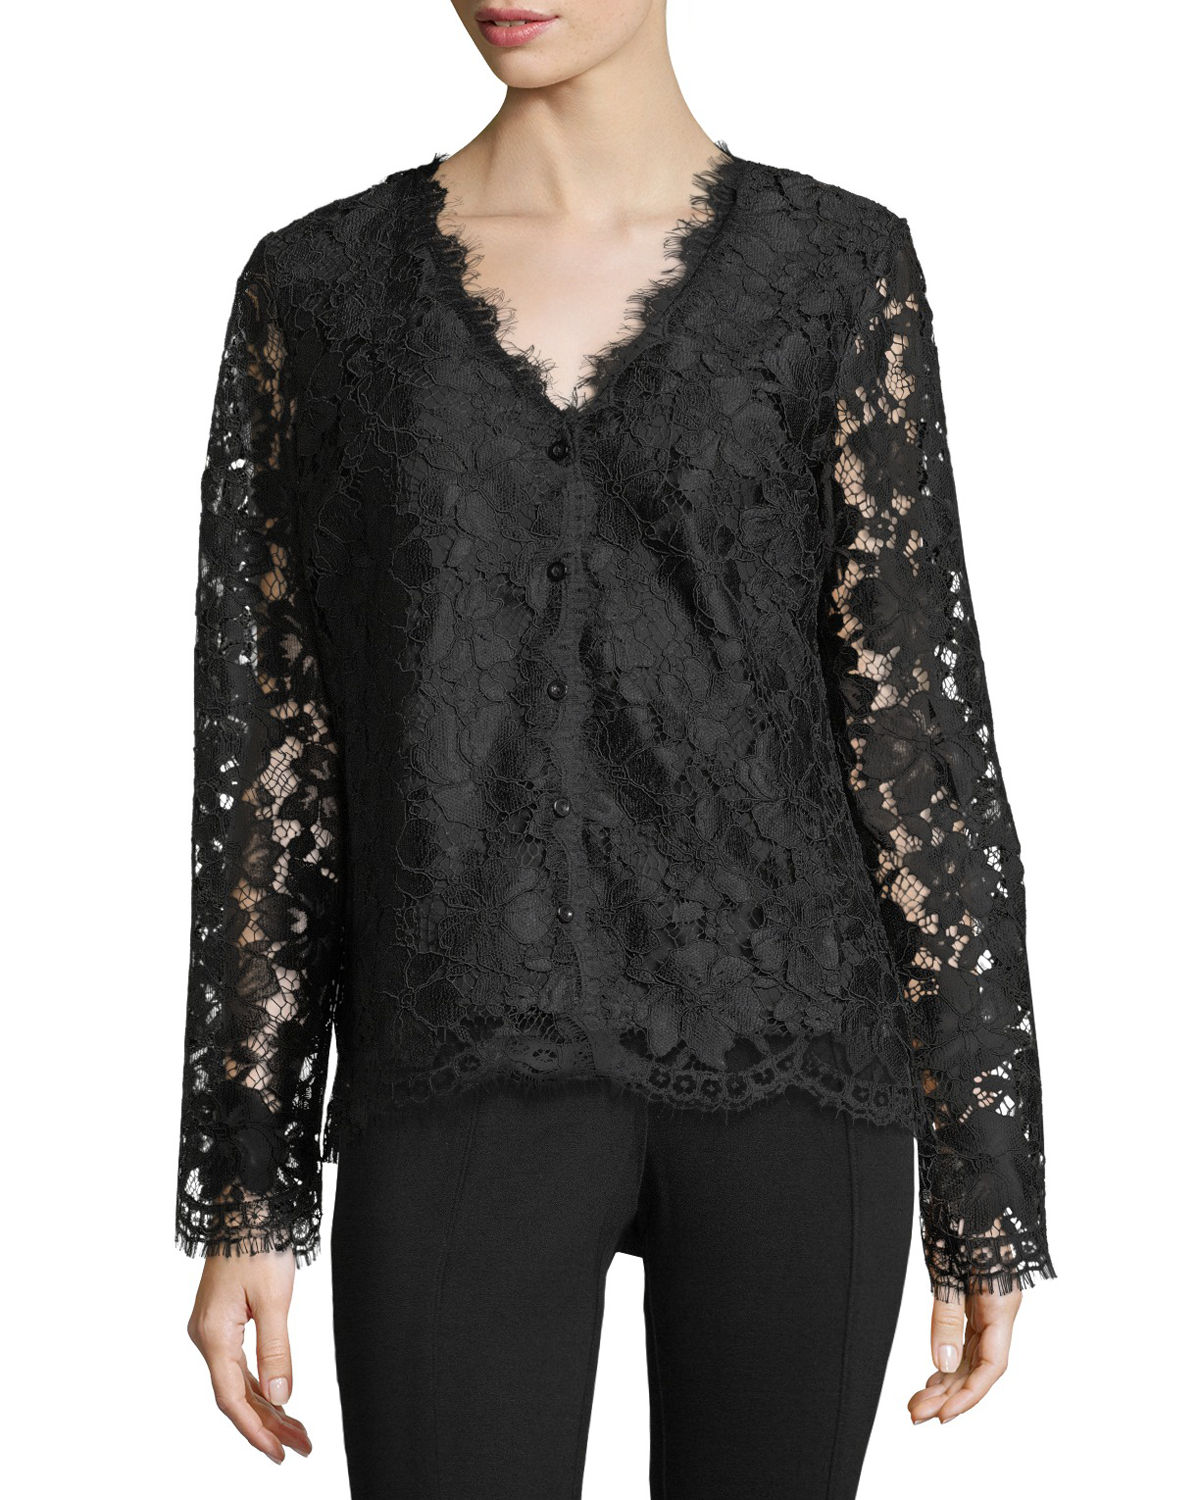 Button-Front Lace Jacket, Black